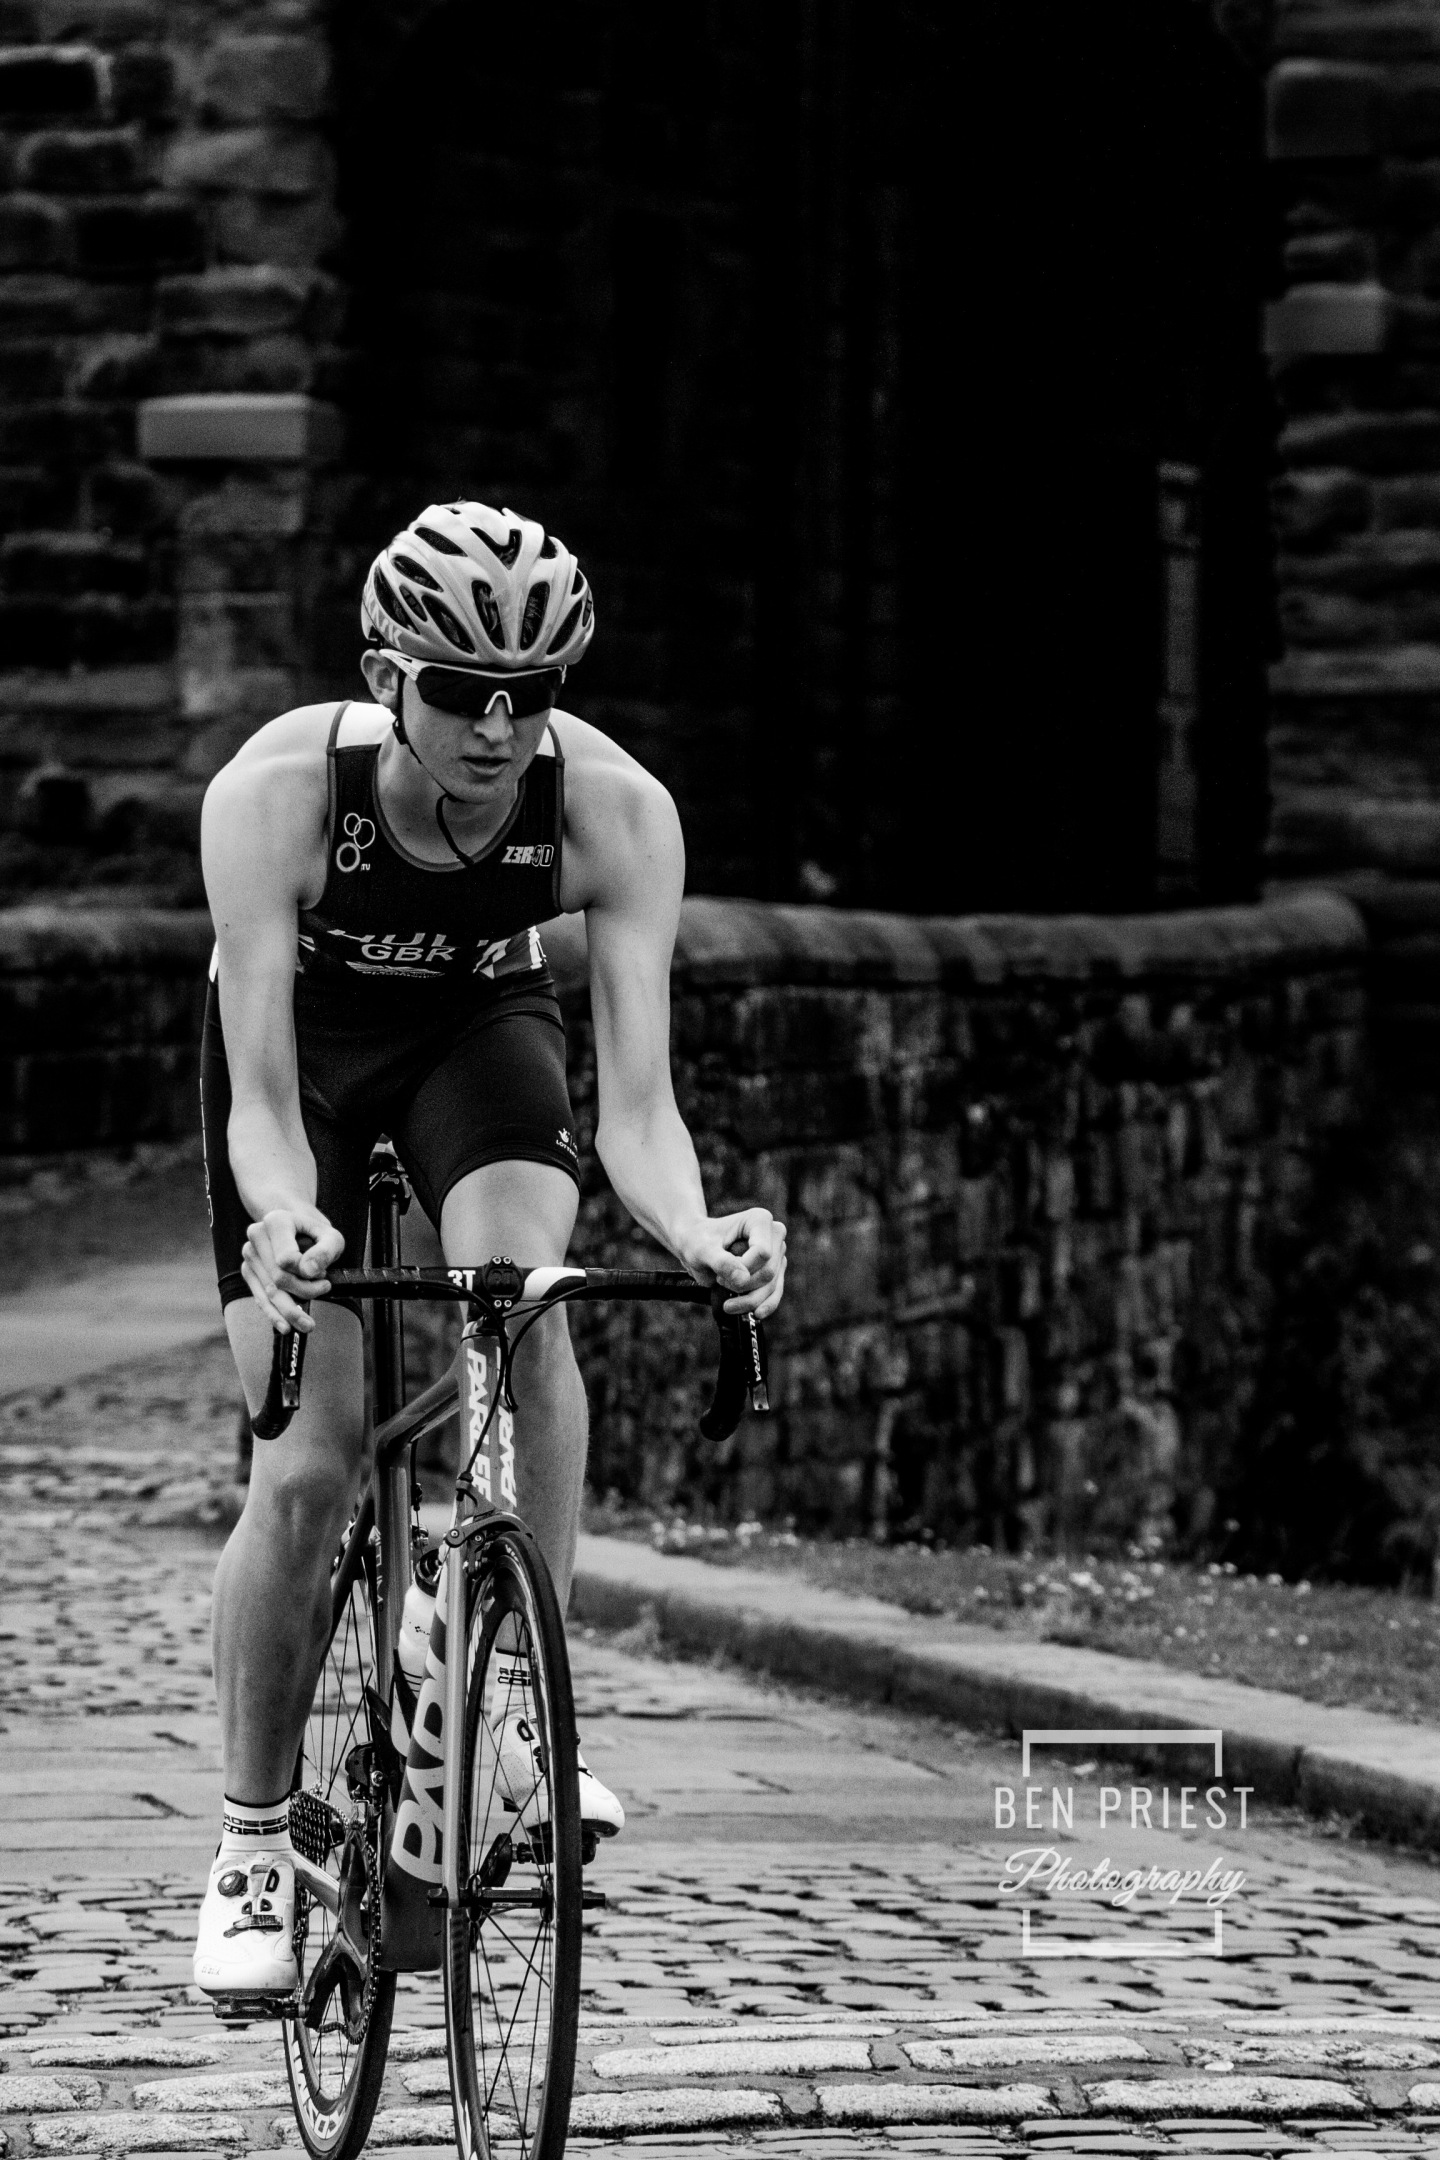 Team GB Triathlete – Jordan Hull – Cumbrian Ambassador for the World Health Innovation Summit no.9